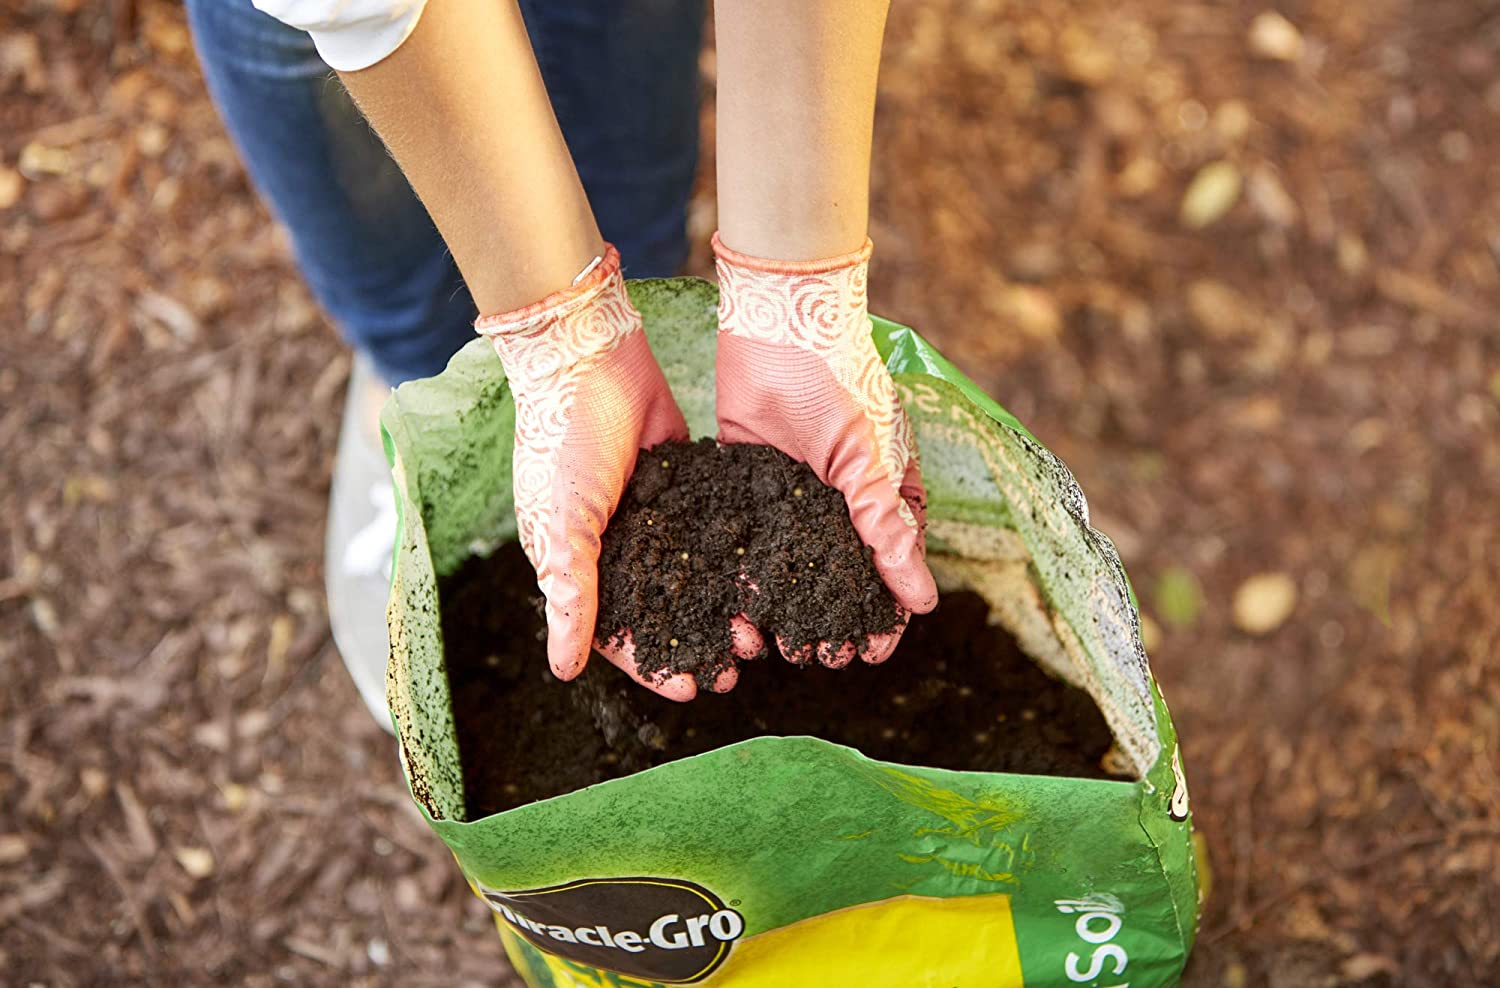 A woman showing the soil from the Miracle-Gro Potting Mix.